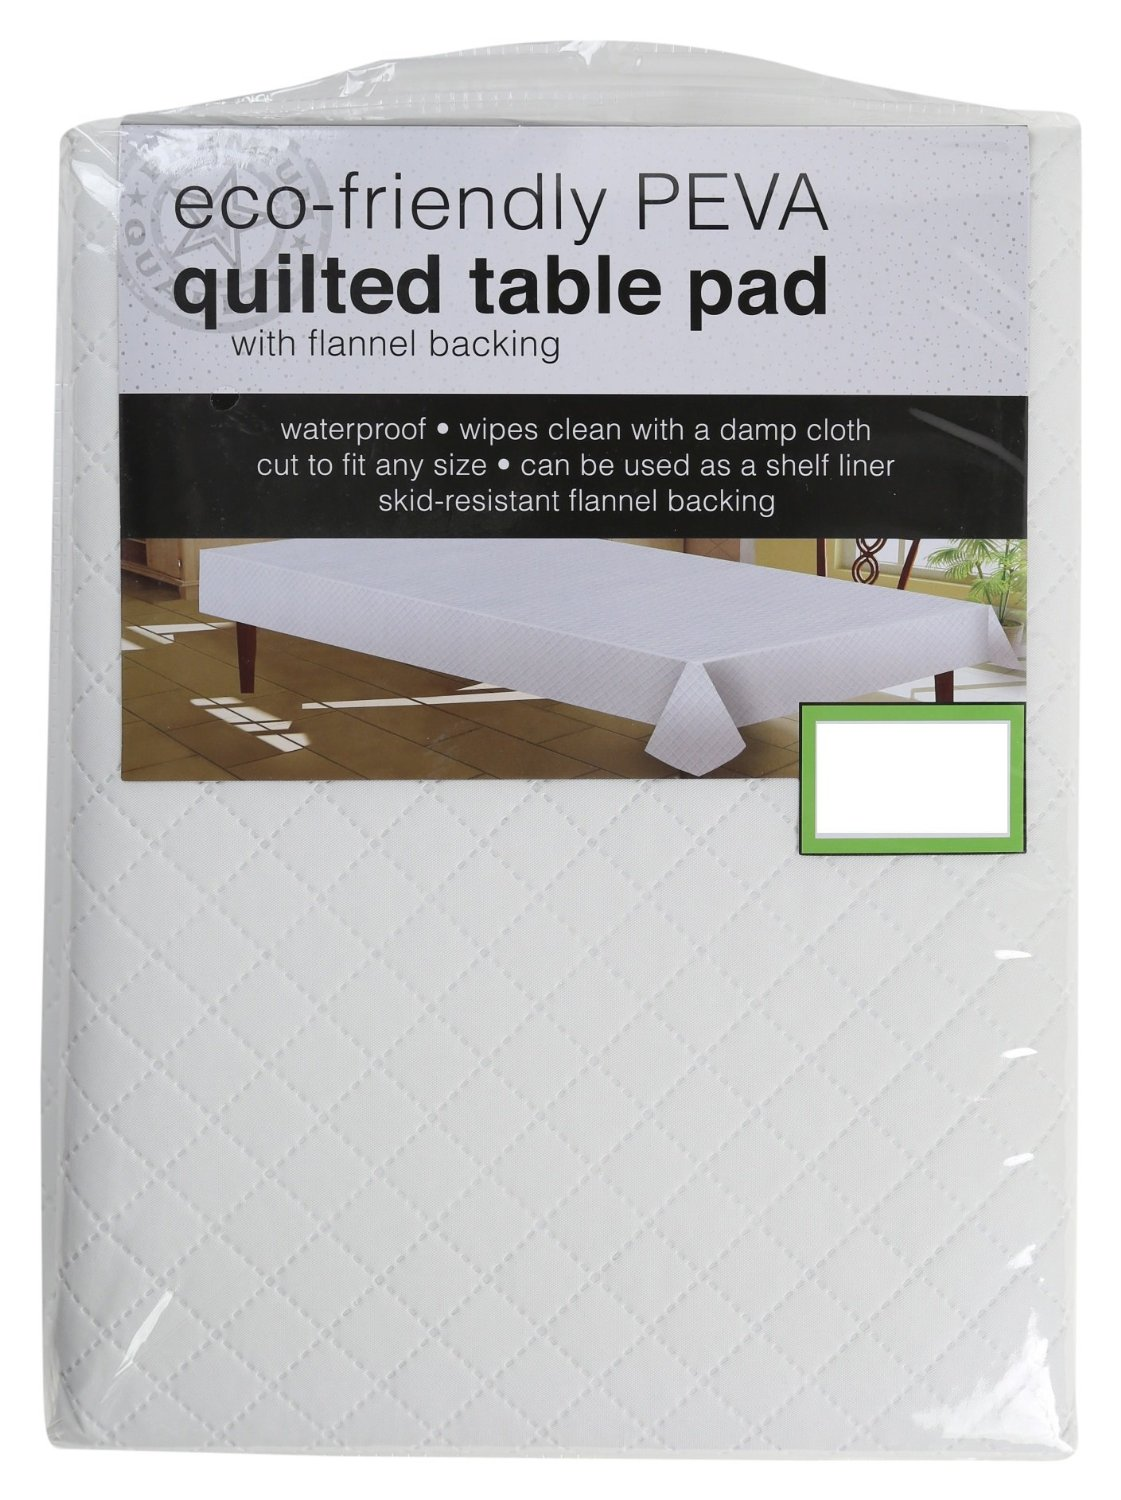 Top Best Table Pads Review - Table pads cut to fit